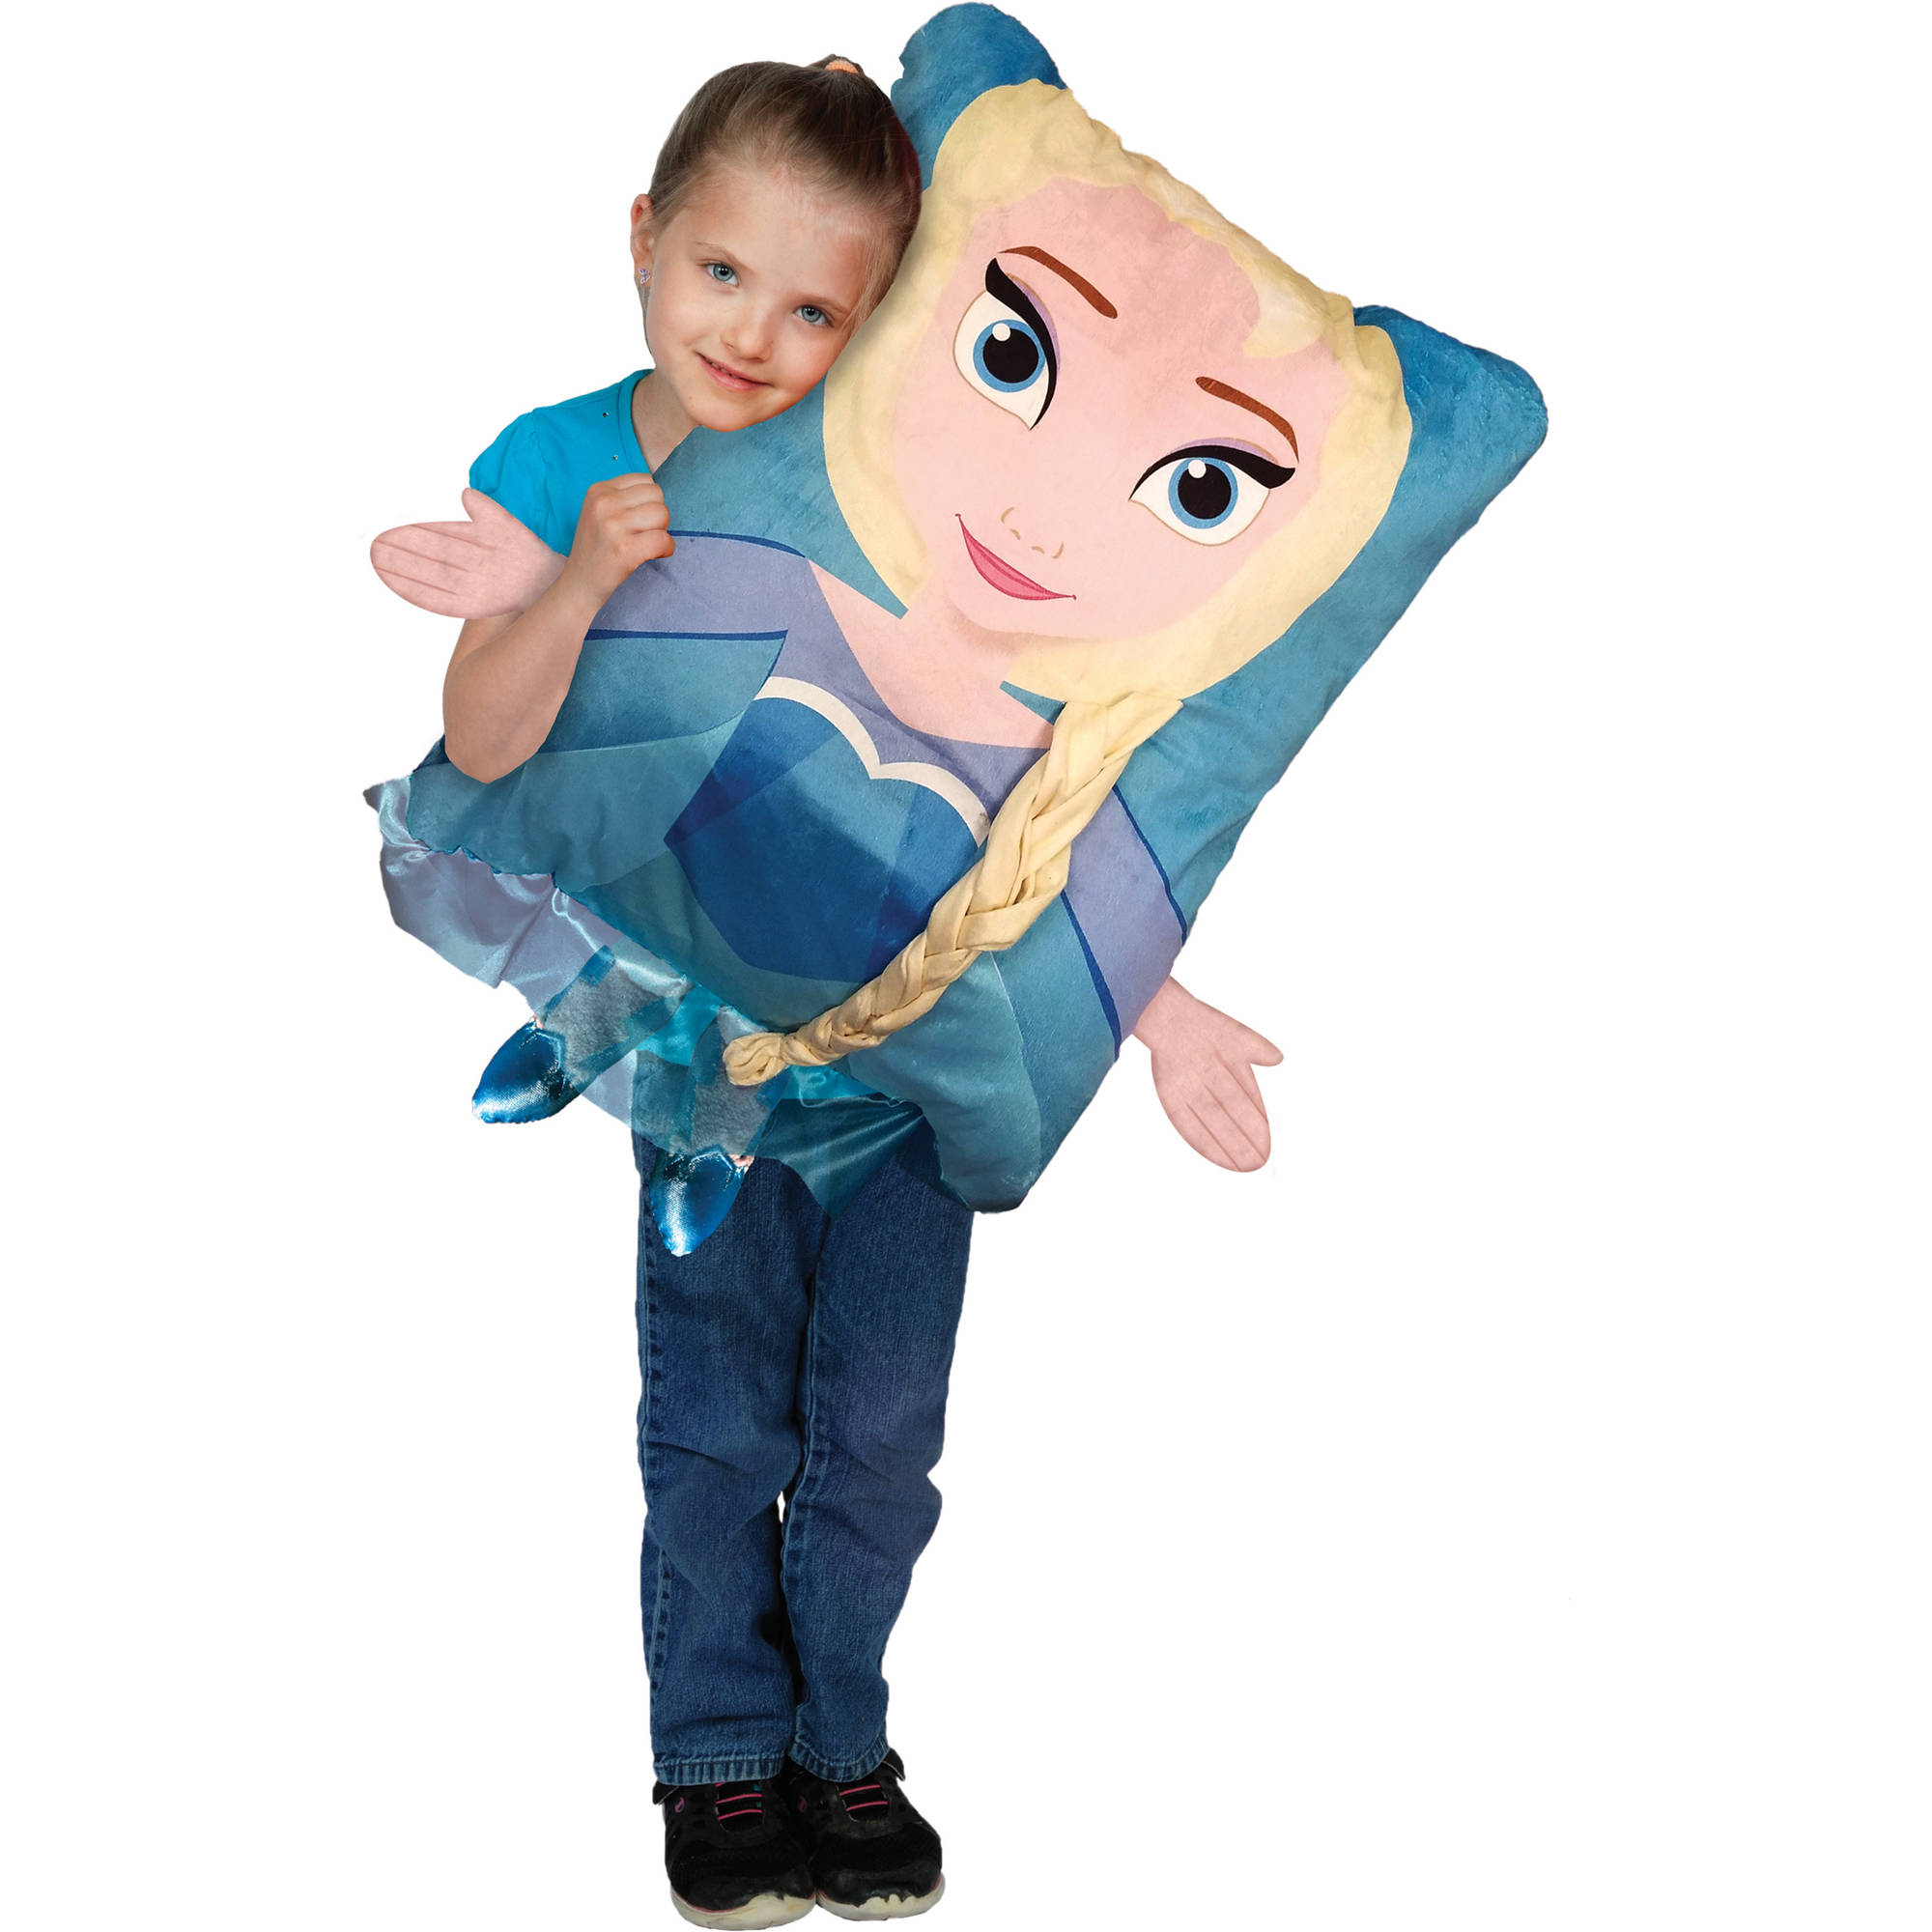 "Disney's Frozen Elsa Kids 3-D Pillow Buddy, 20"" x 26"""